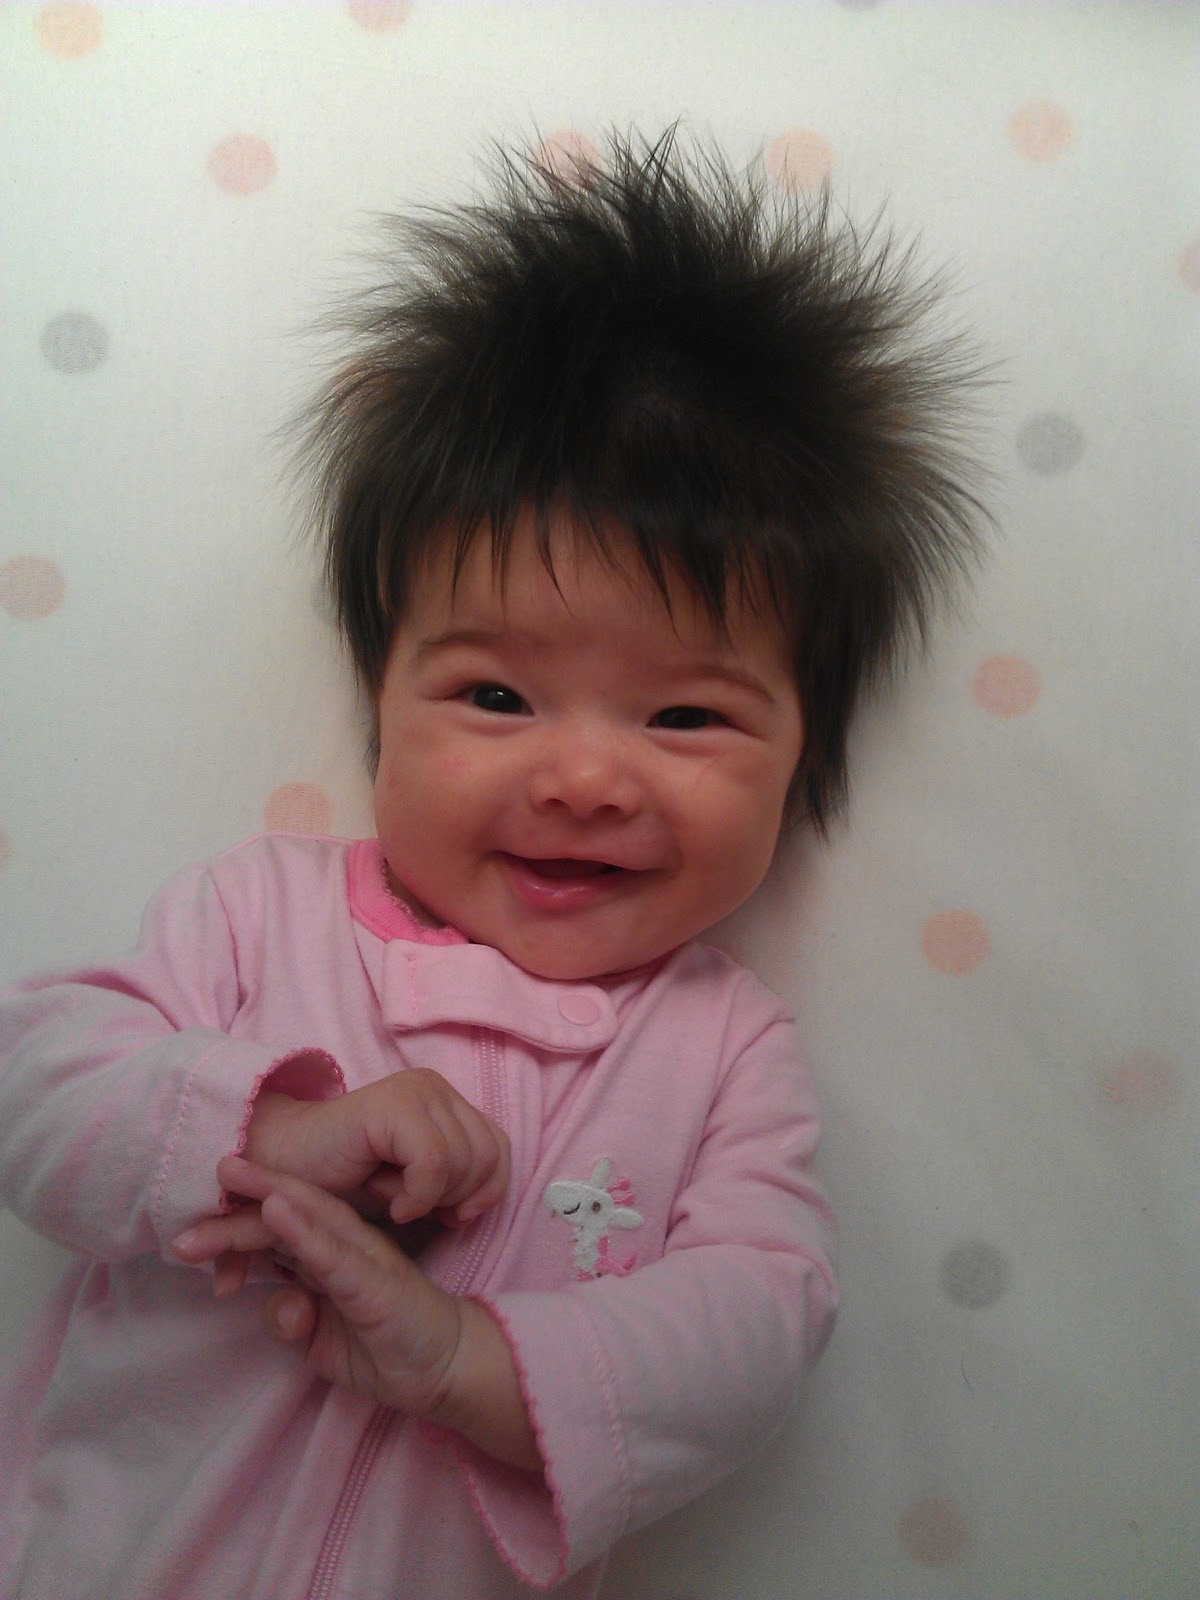 wuhoo!: Eden's Awesome Hair Defective Child